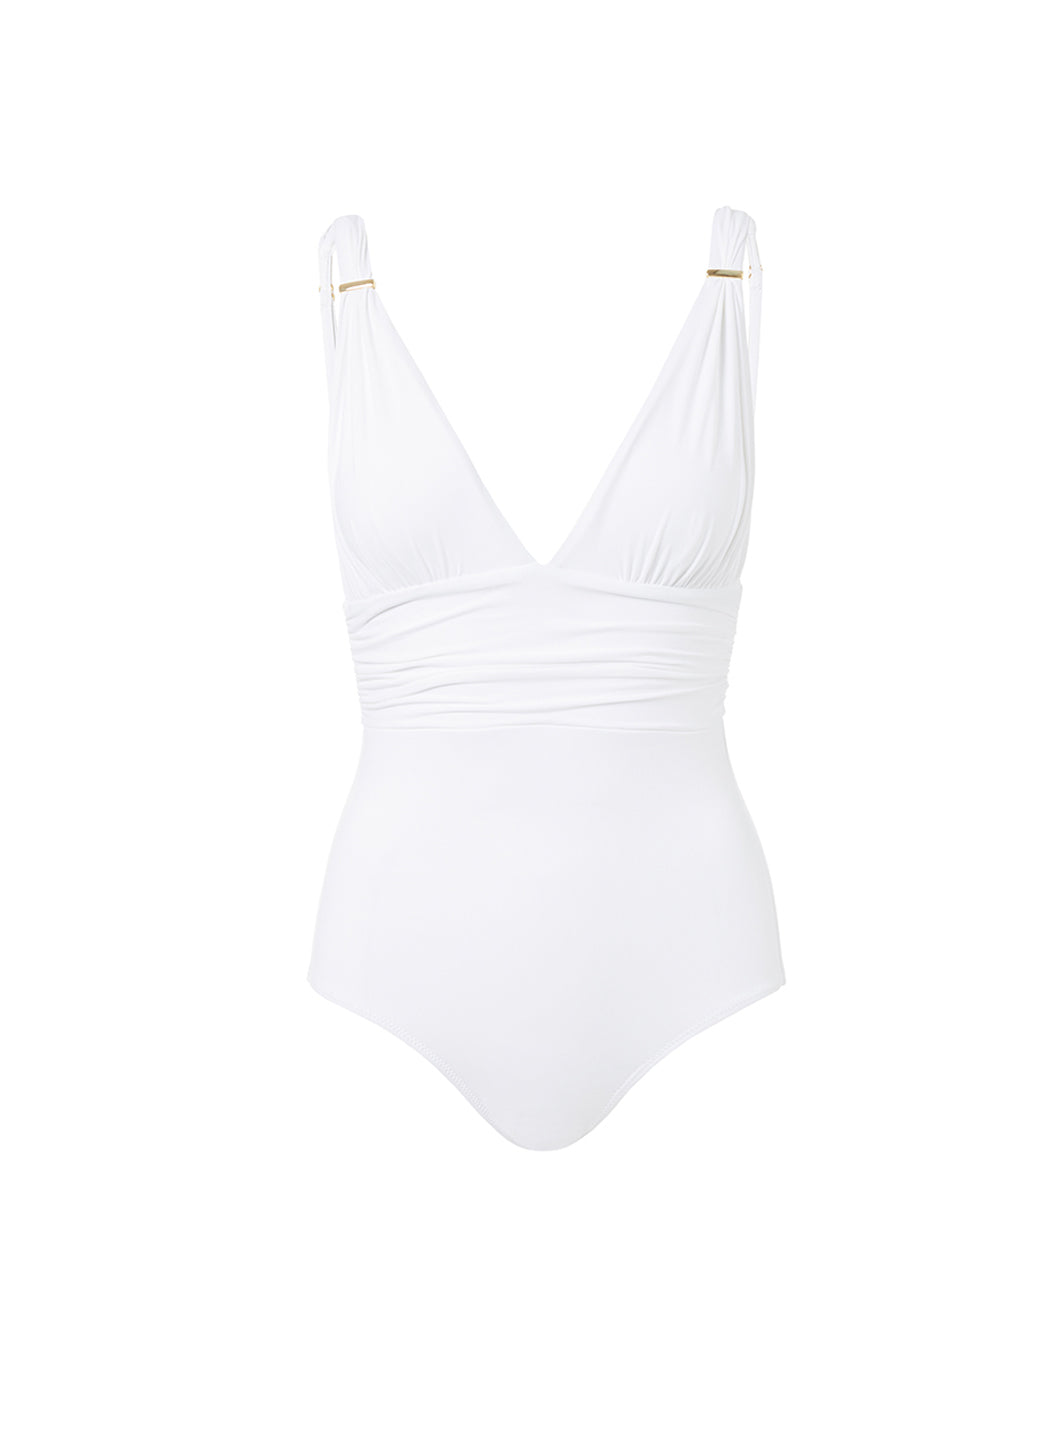 Panarea White Classic Over The Shoulder Ruched Swimsuit - Melissa Odabash New Arrivals